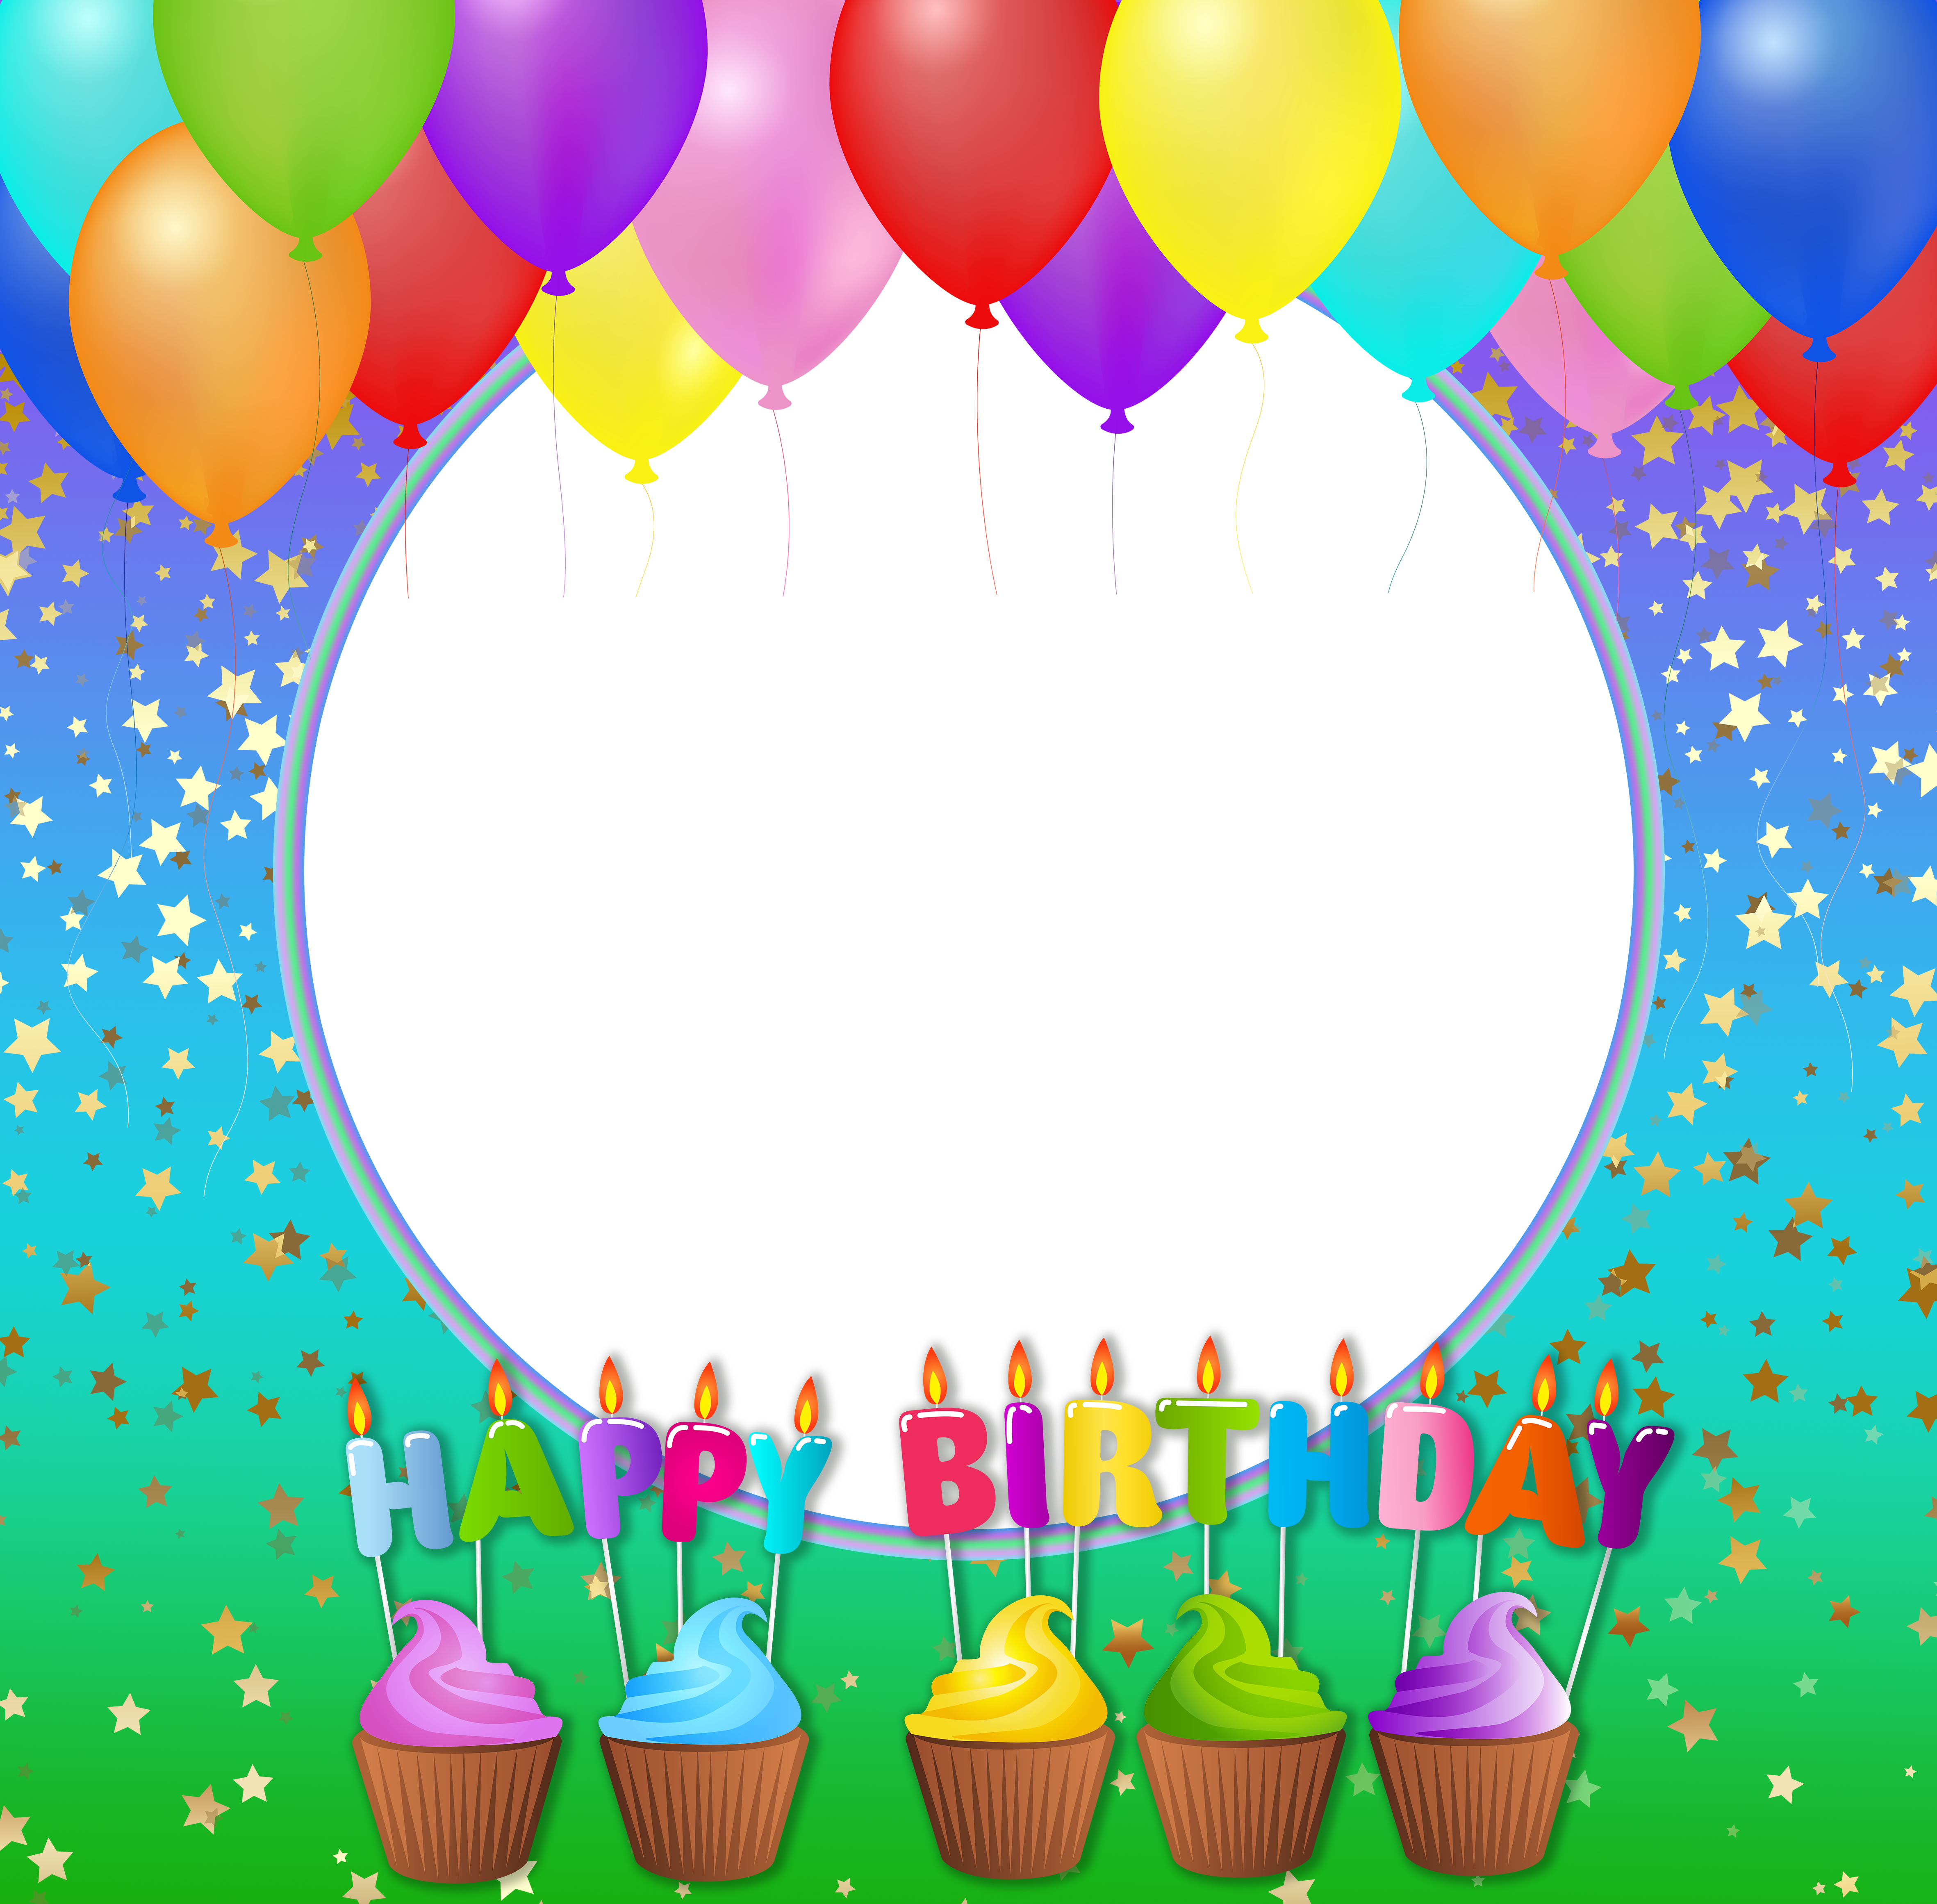 Free picture frames photo. Frame happy birthday png clipart library stock